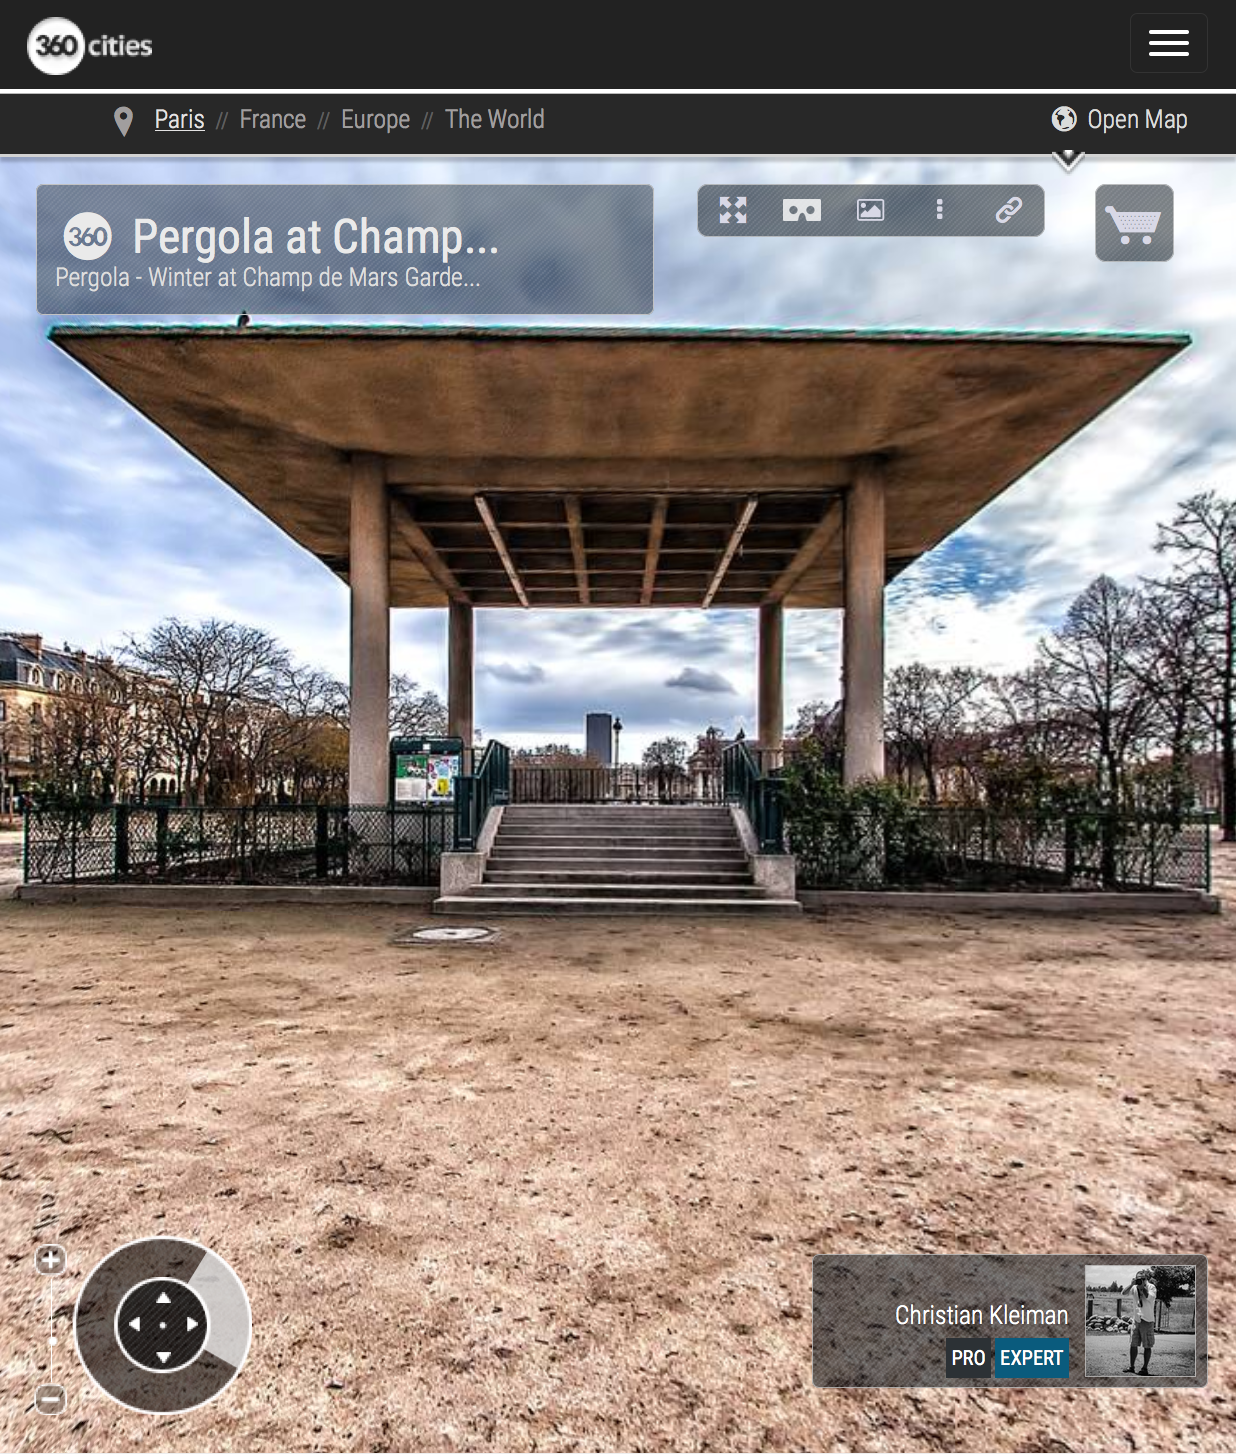 Pergola at Champ de Mars Garden in winter - Creative 360 VR Spherical Panoramic Photography from emblematic places in Paris, France by © Christian Kleiman